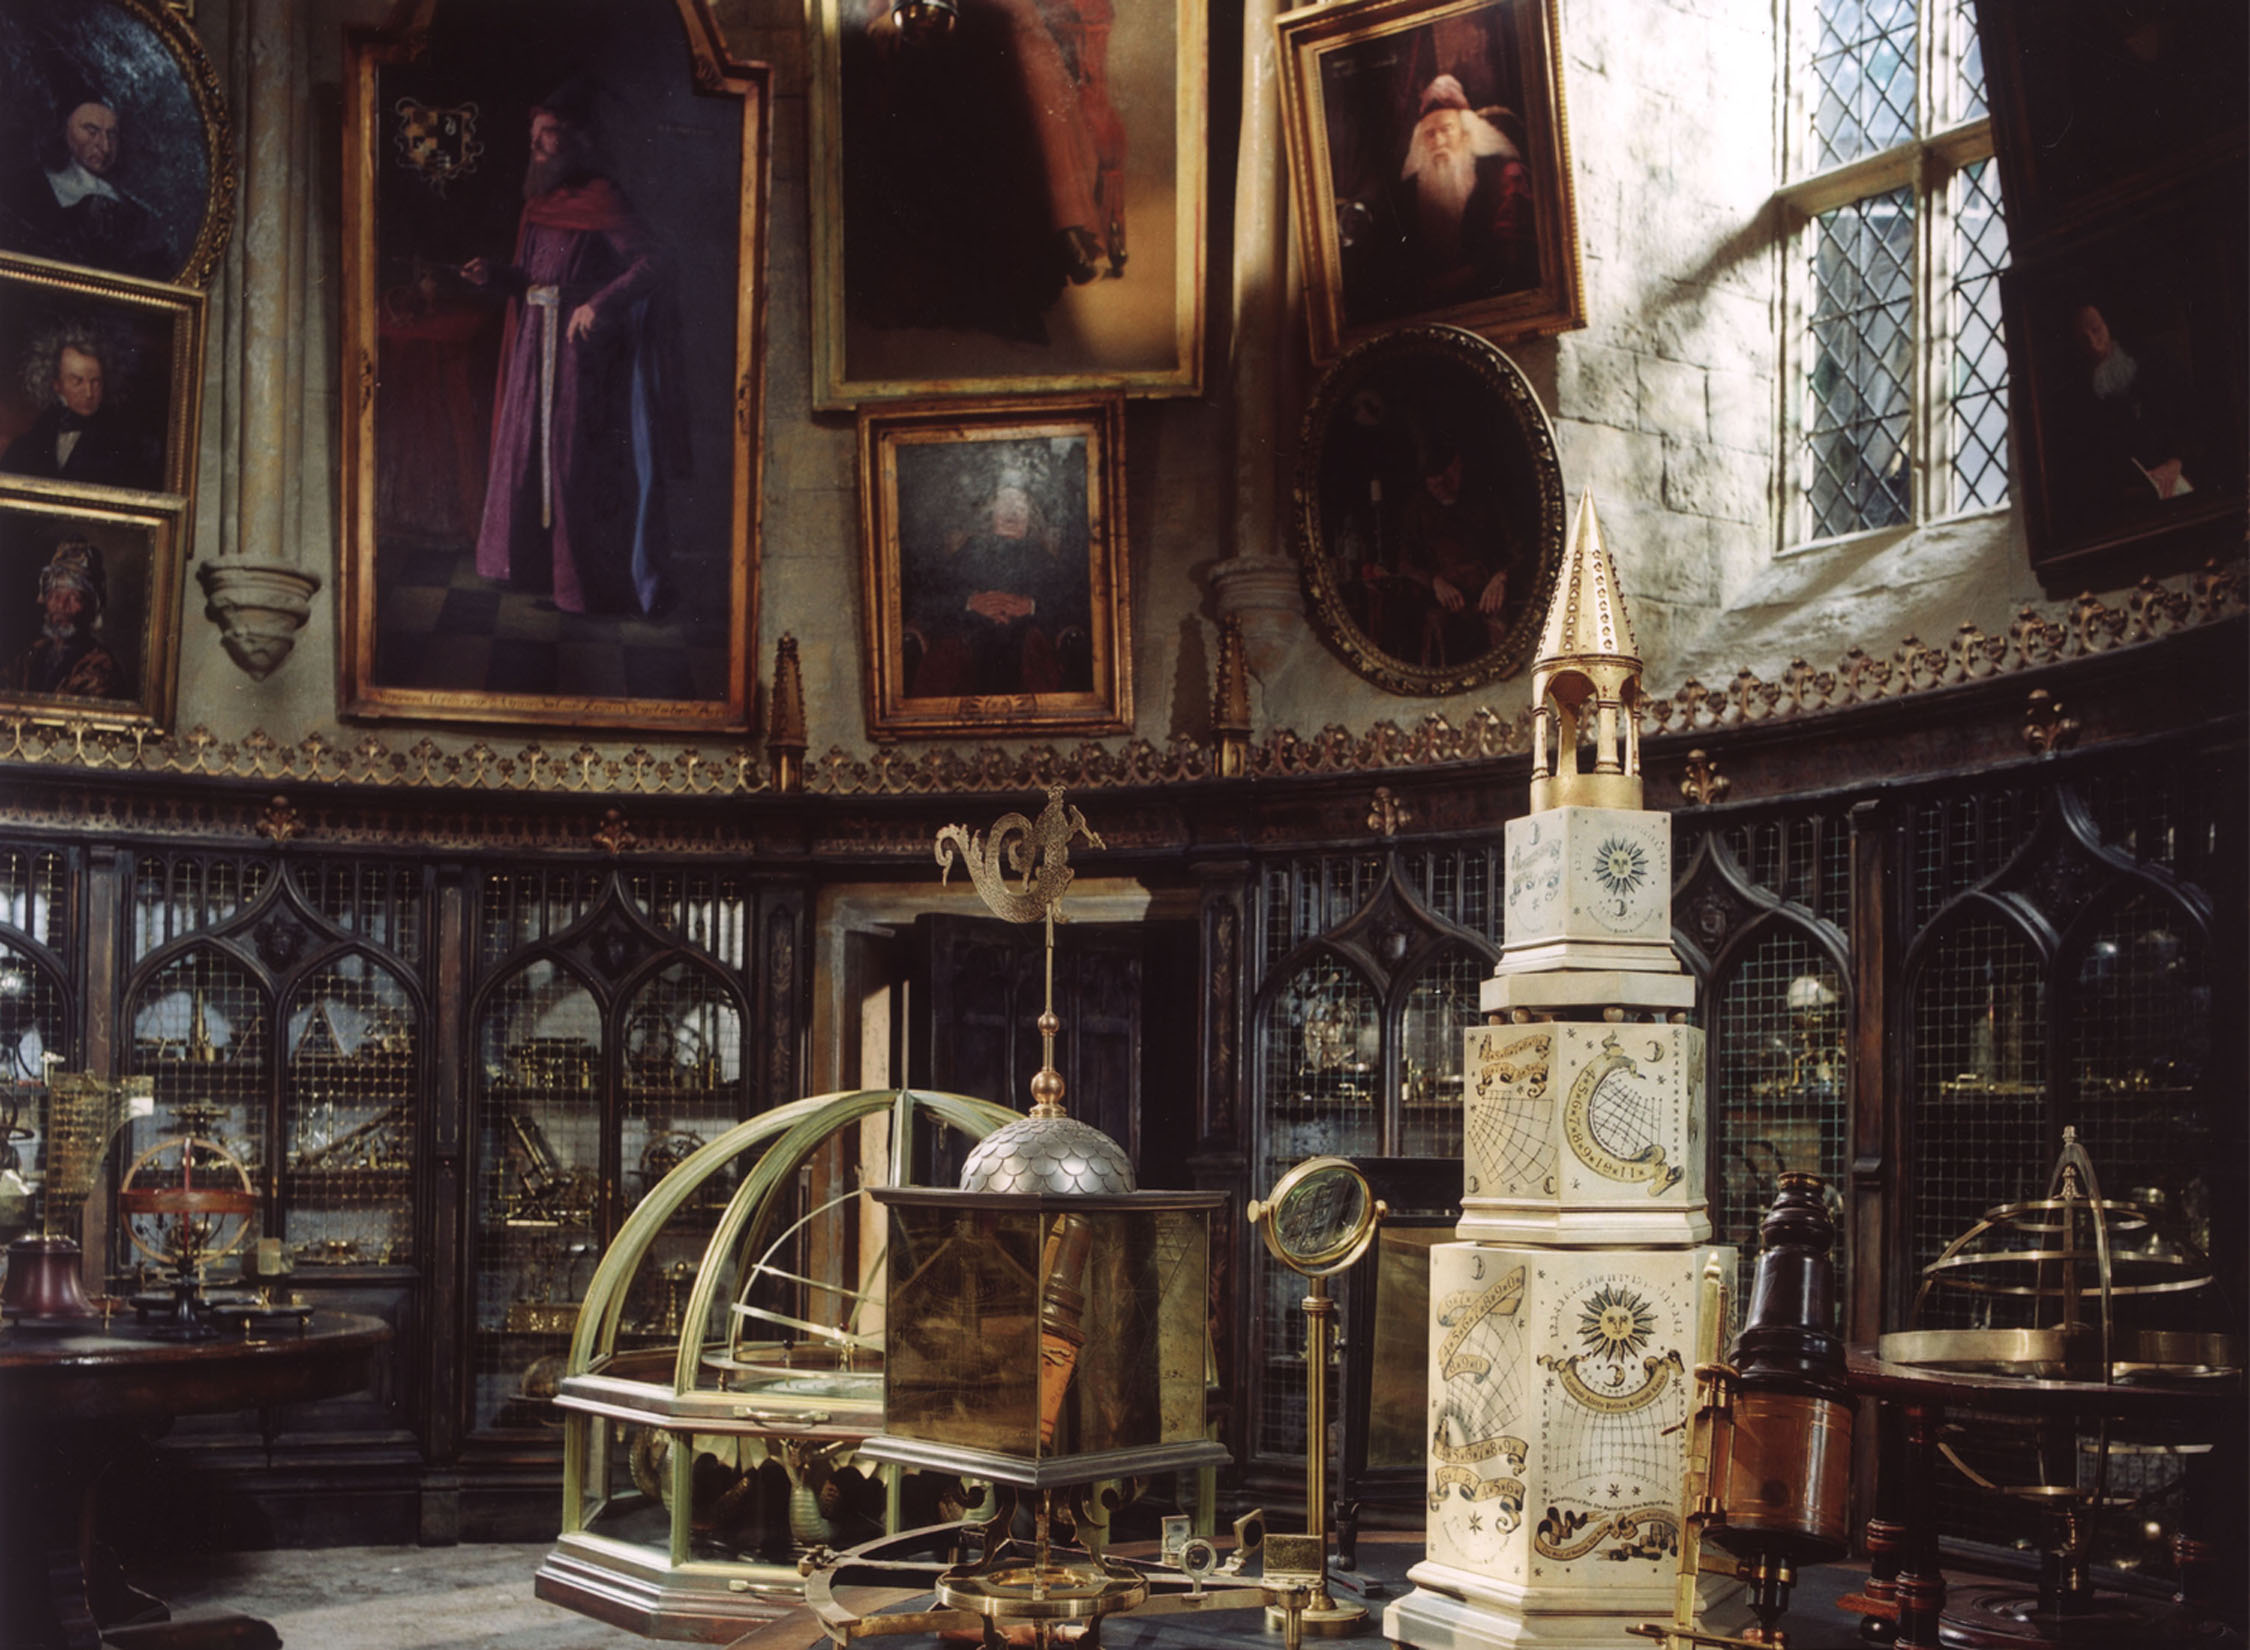 Dumbledore's chamber - in set